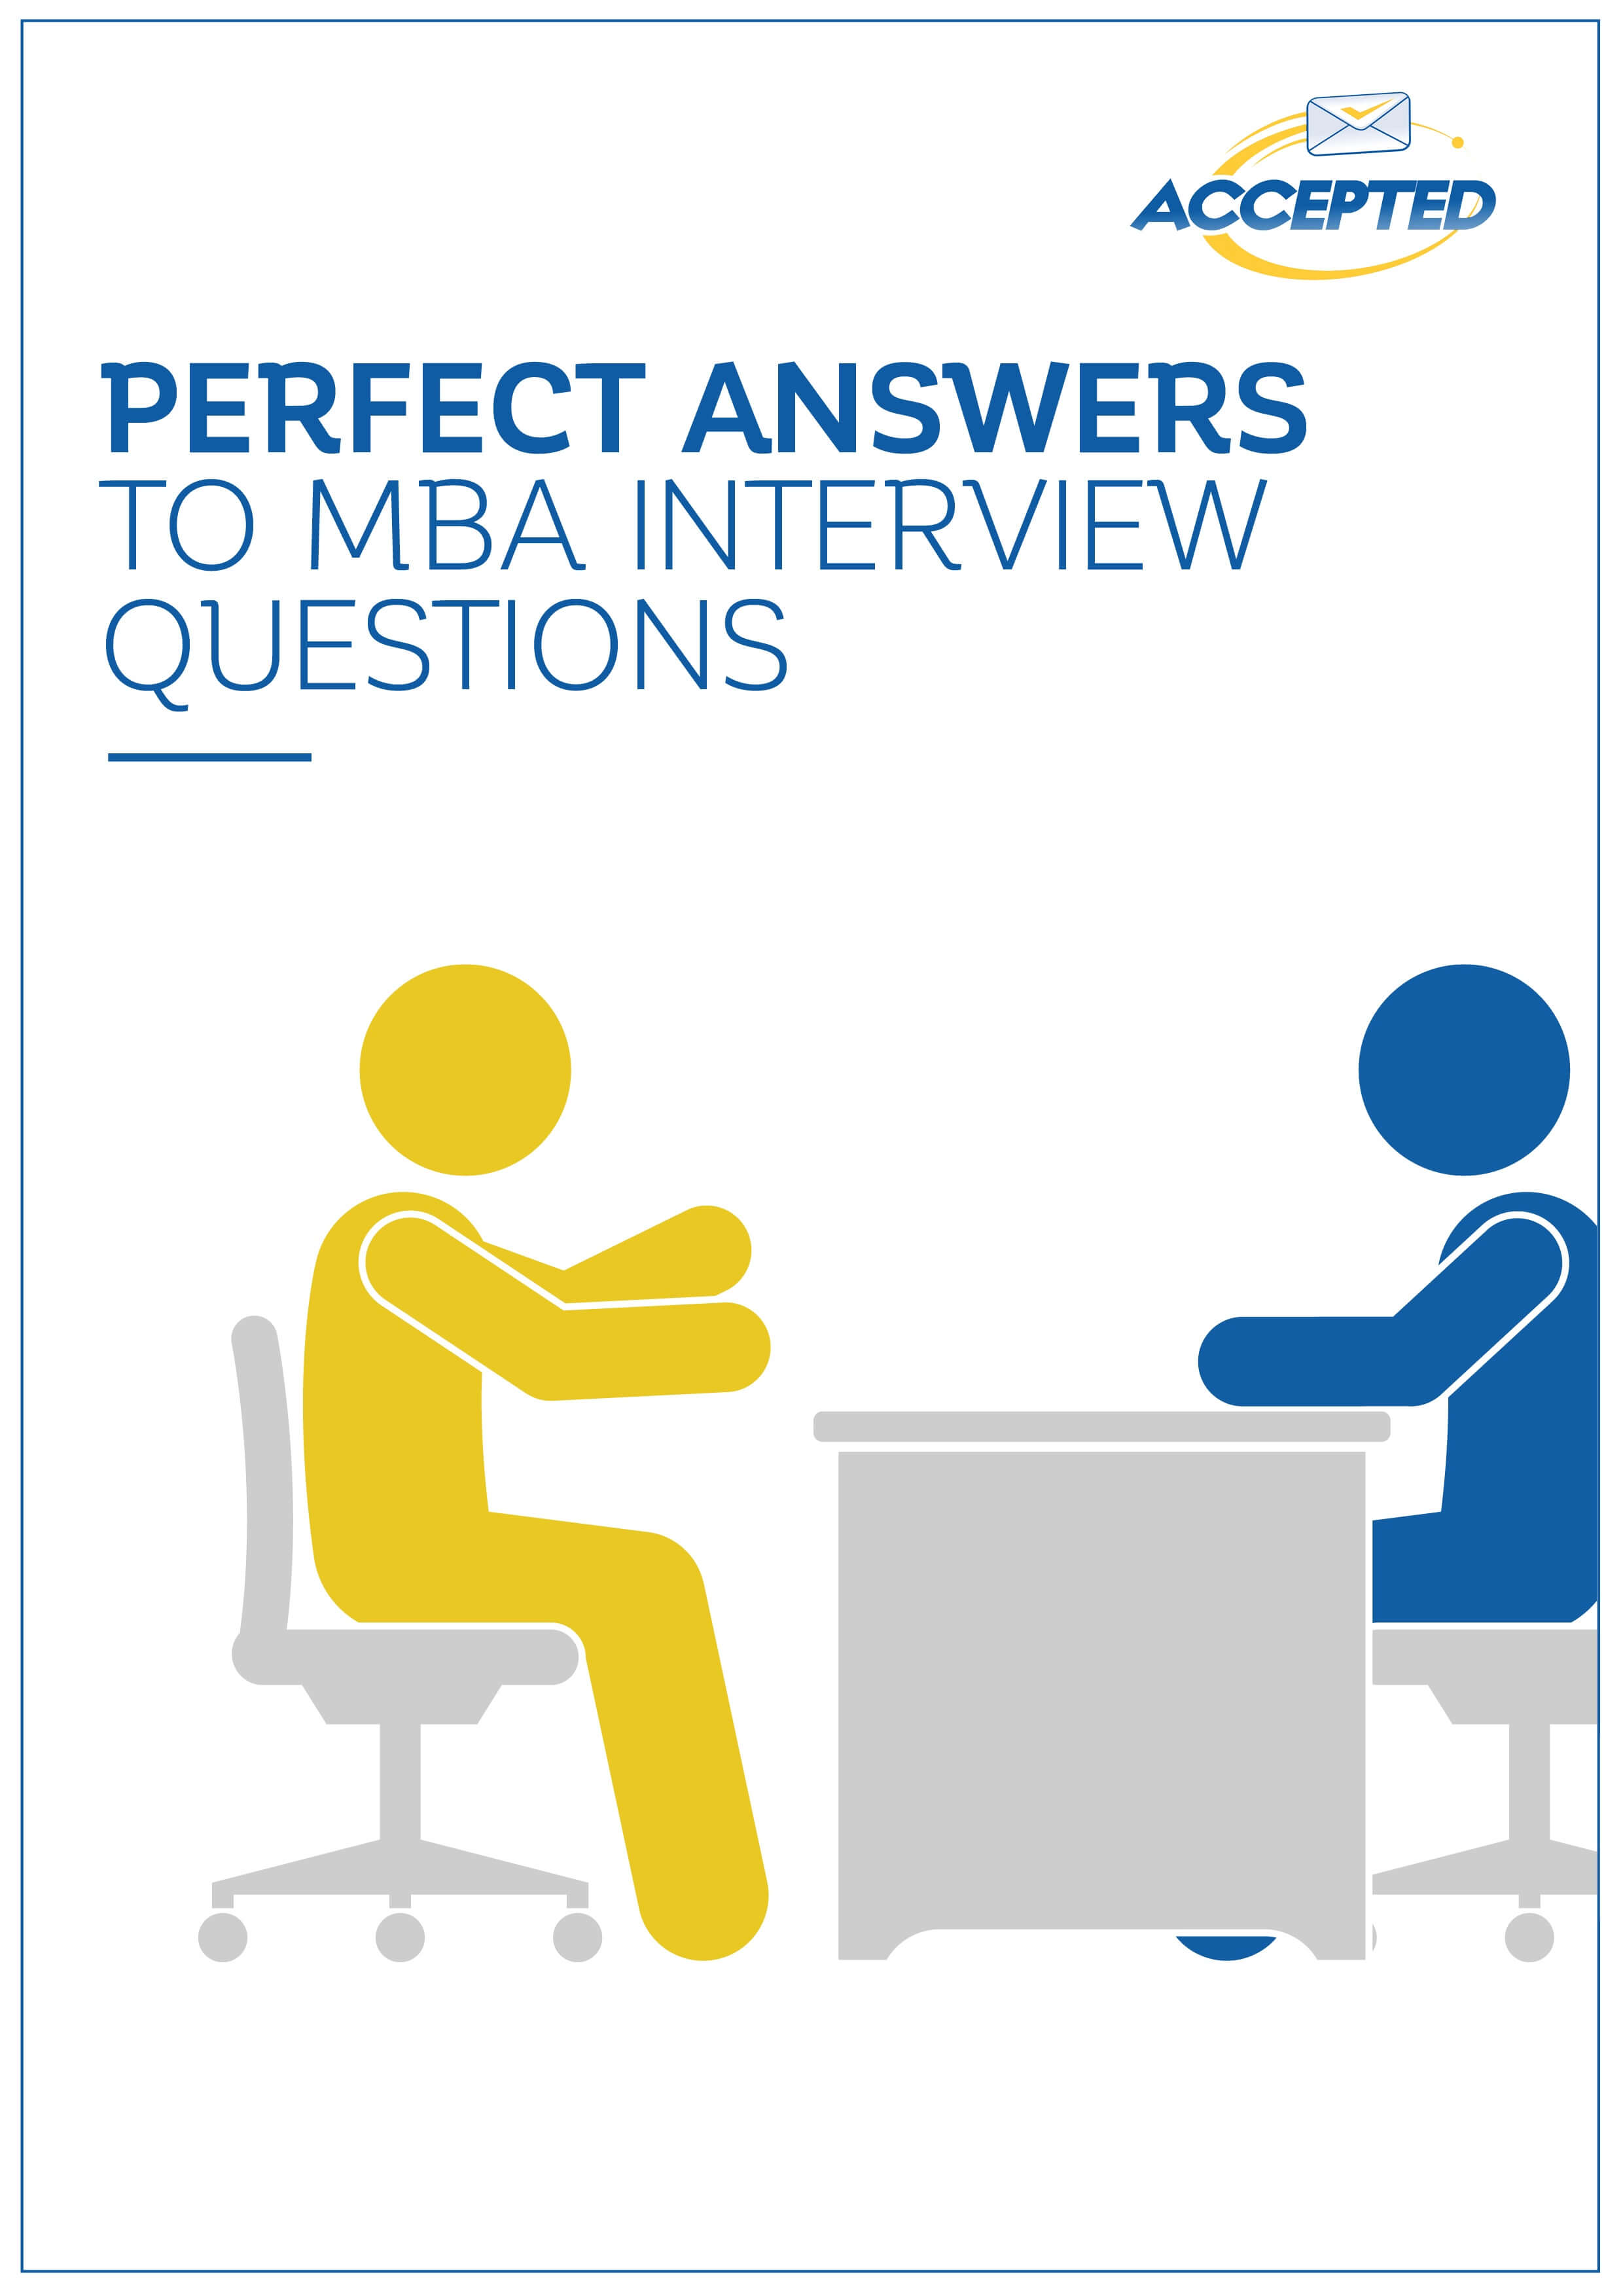 MBA_Interview_Perfect_Answers_LP.jpg